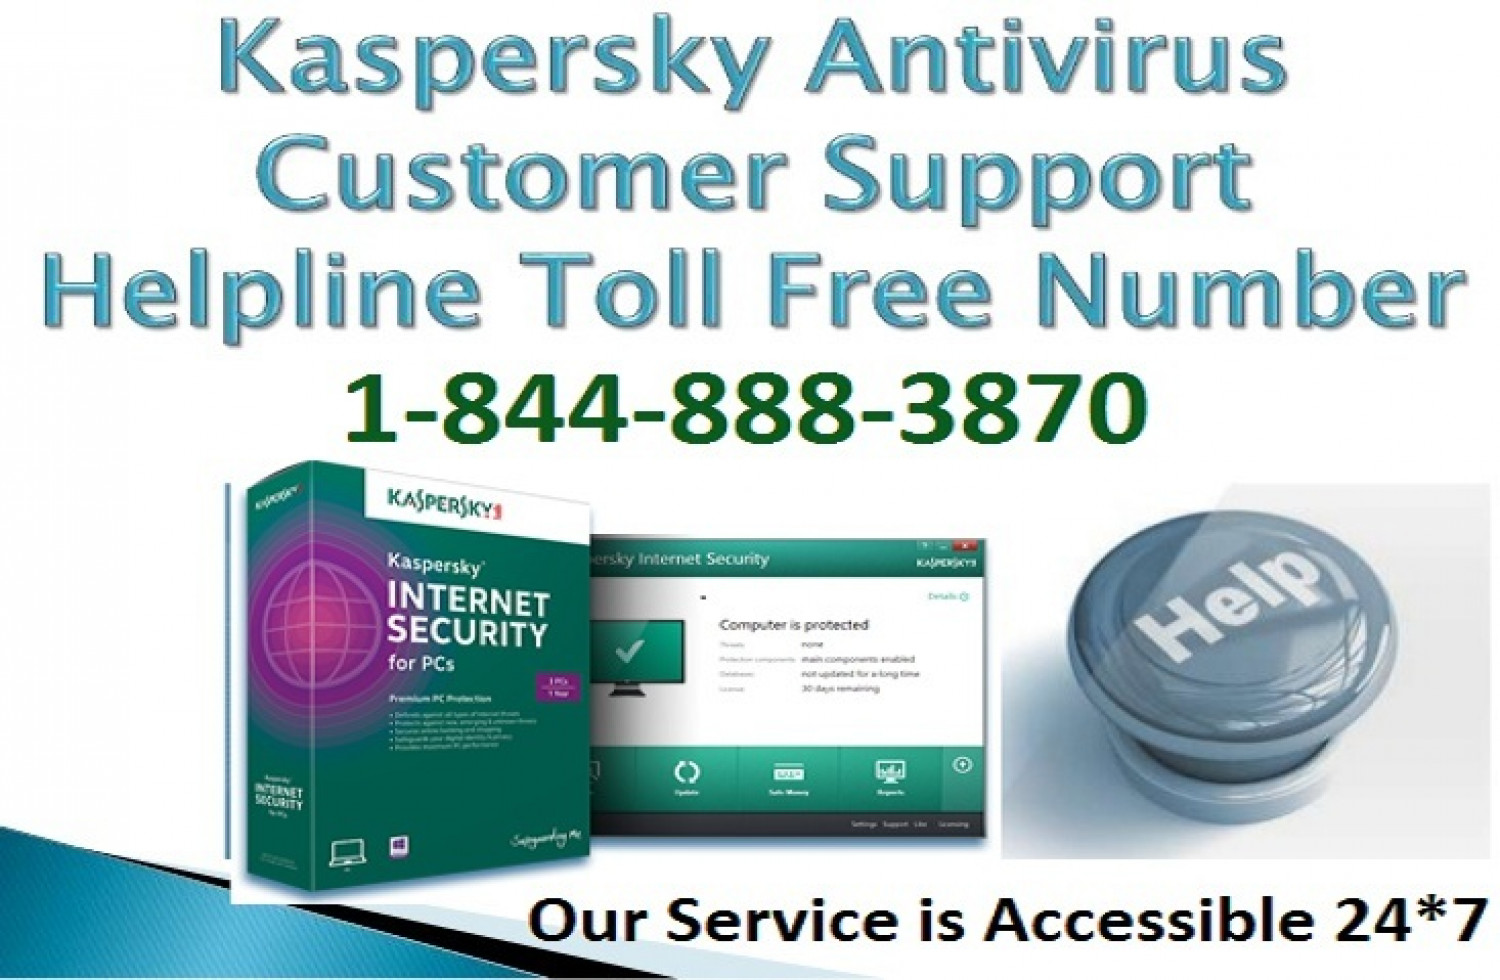 Dial Kaspersky Antivirus Customer Support Number 1-844-888-3870 for Sufficient Services Infographic